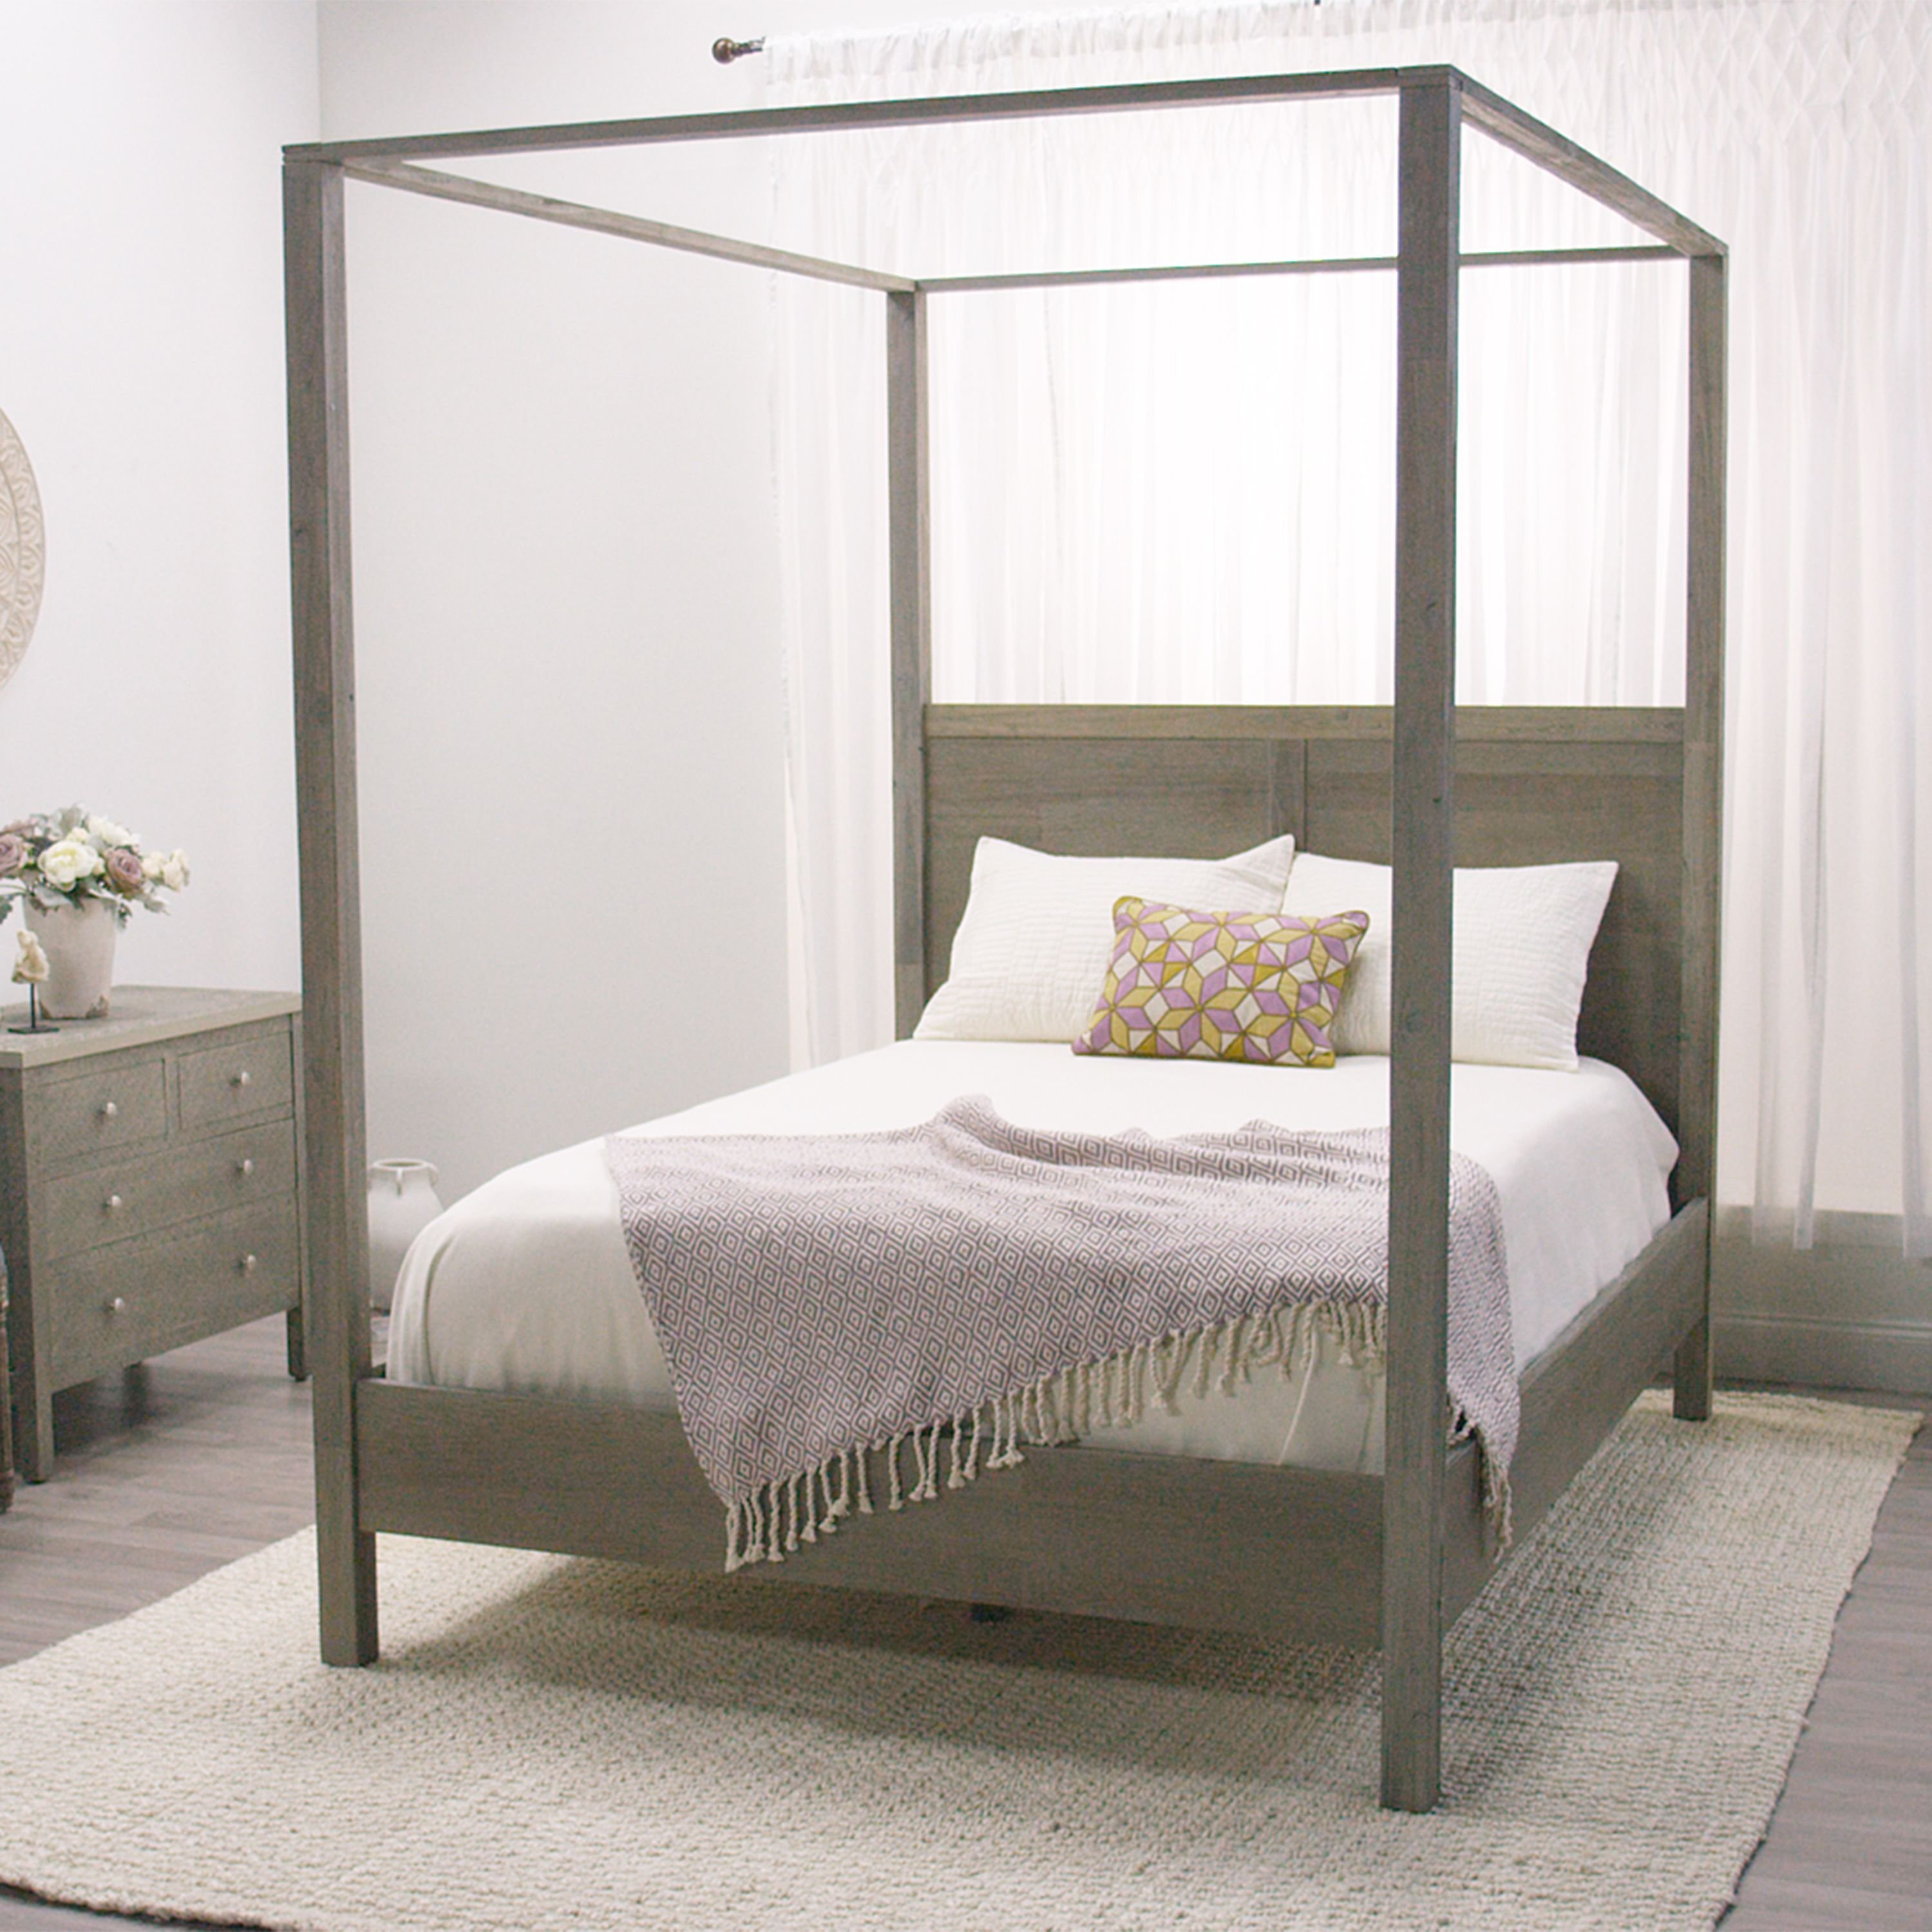 Best Gray Marlon Queen Canopy Bed Rustic Elegance Canopy And With Pictures